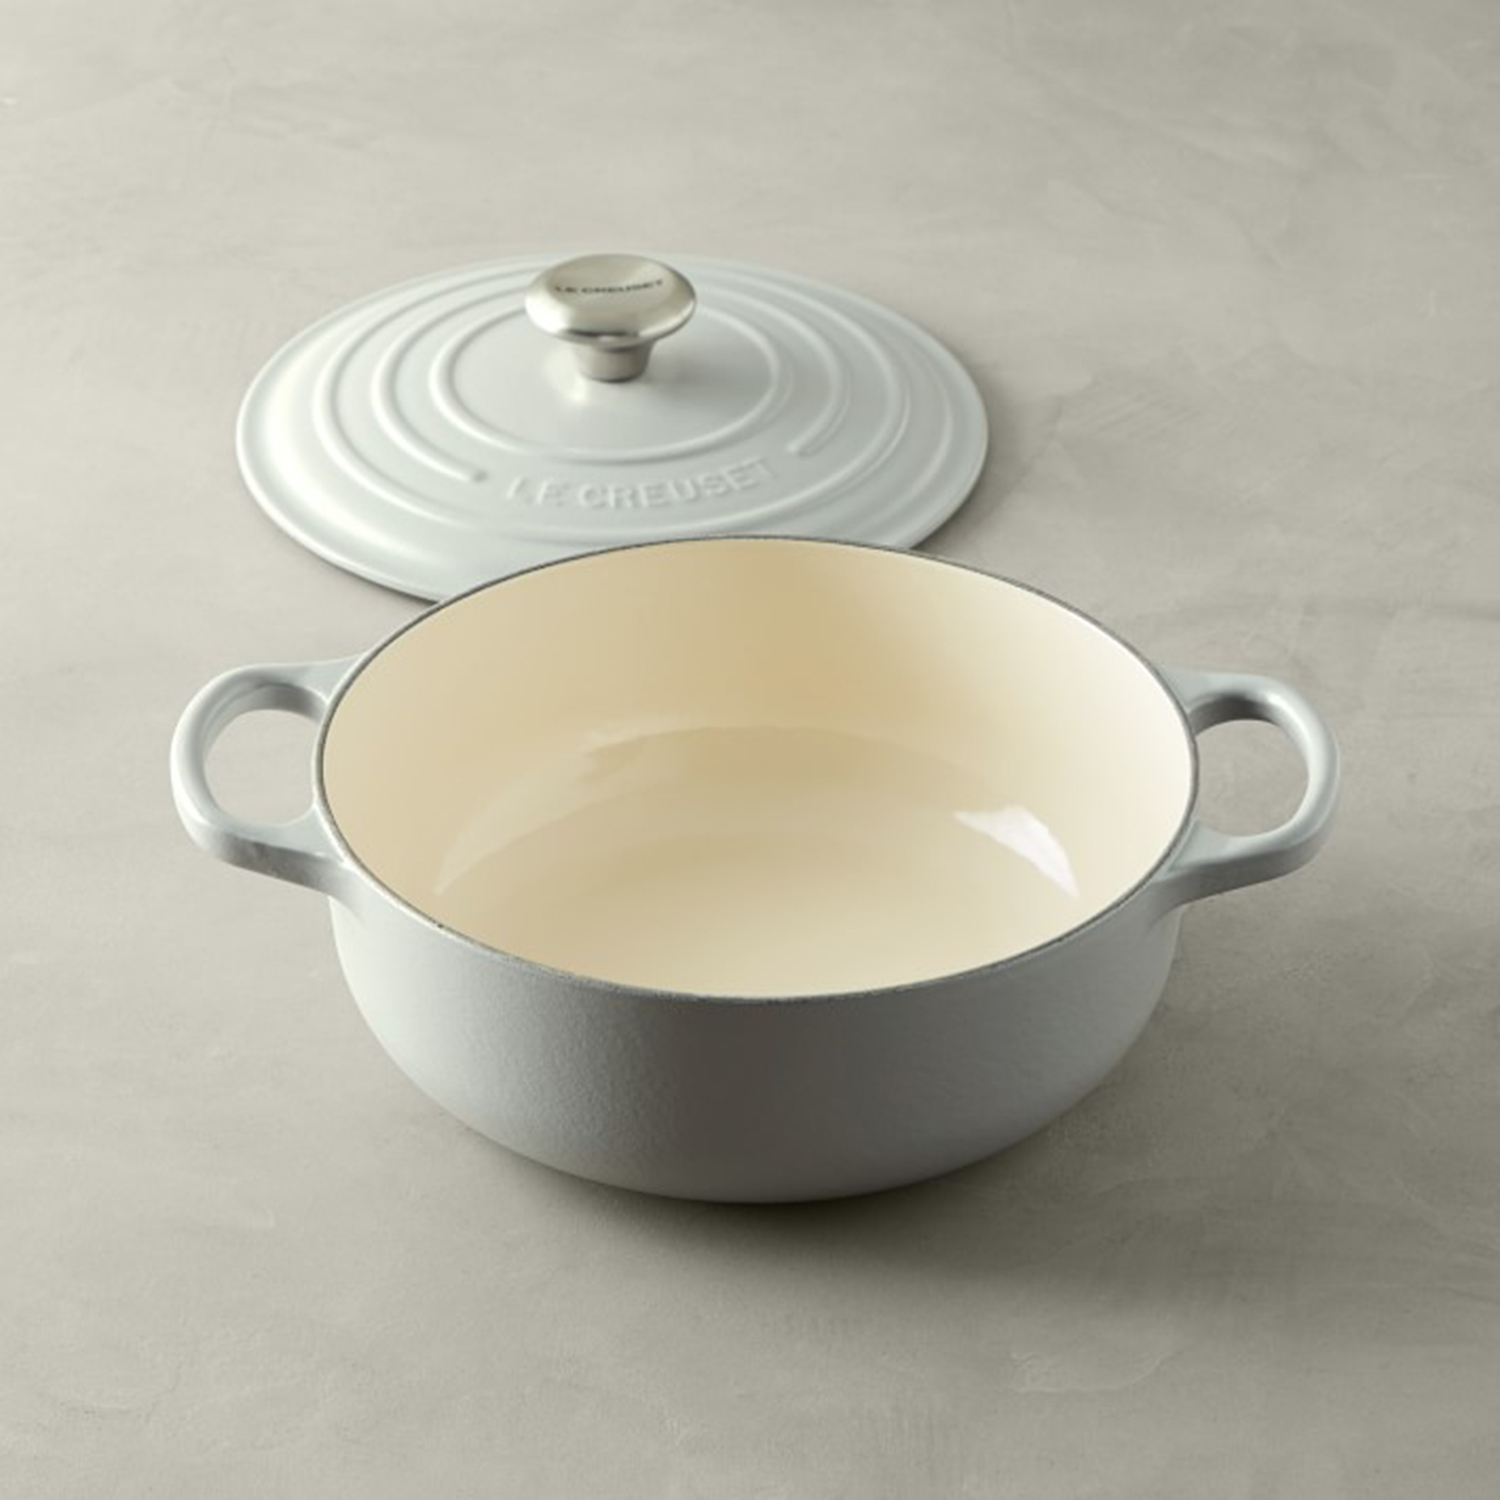 Le Creuset Signature Cast-Iron 3 1/2-Qt. Essential Oven